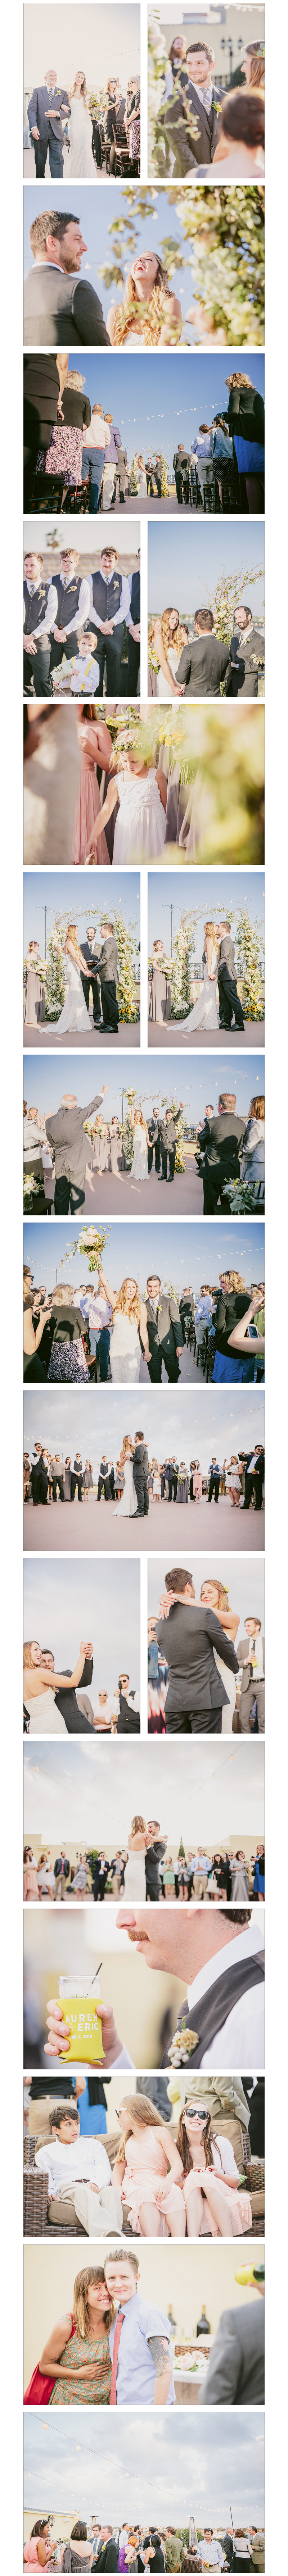 st augustine beach wedding 4.jpg